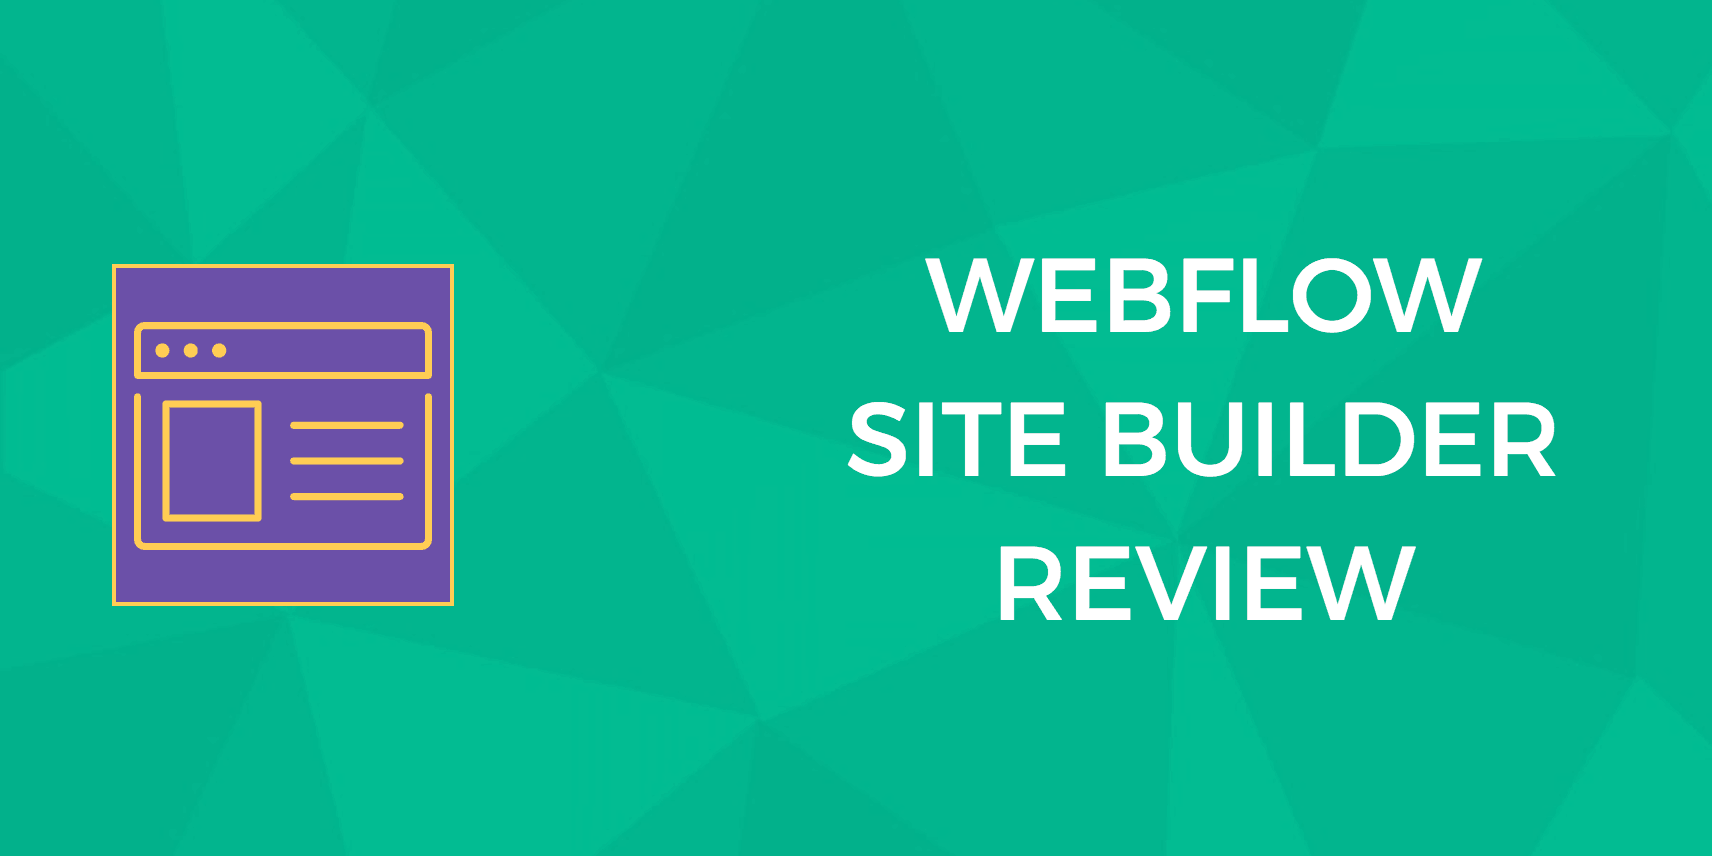 Webflow Review: What Makes This Website Builder So Different